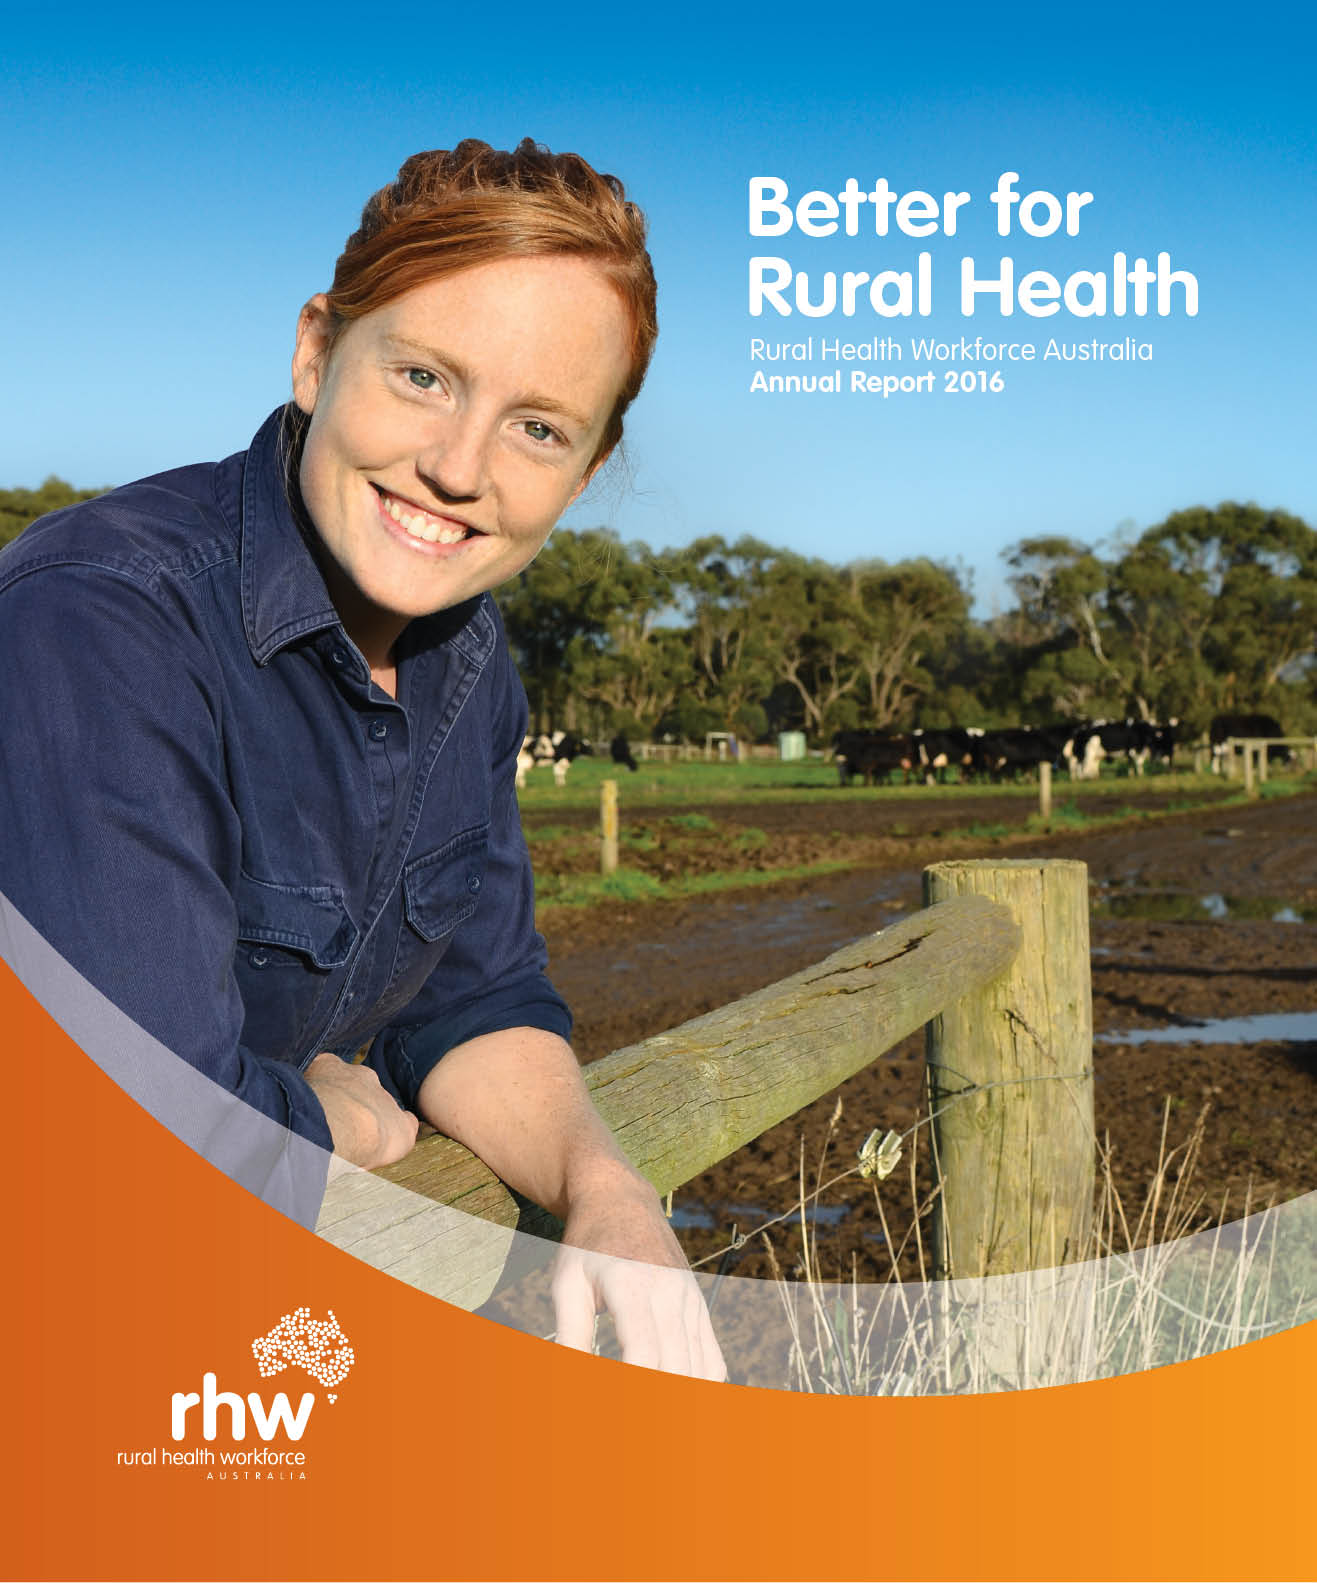 Better for Rural Health - see our 2016 Annual Report